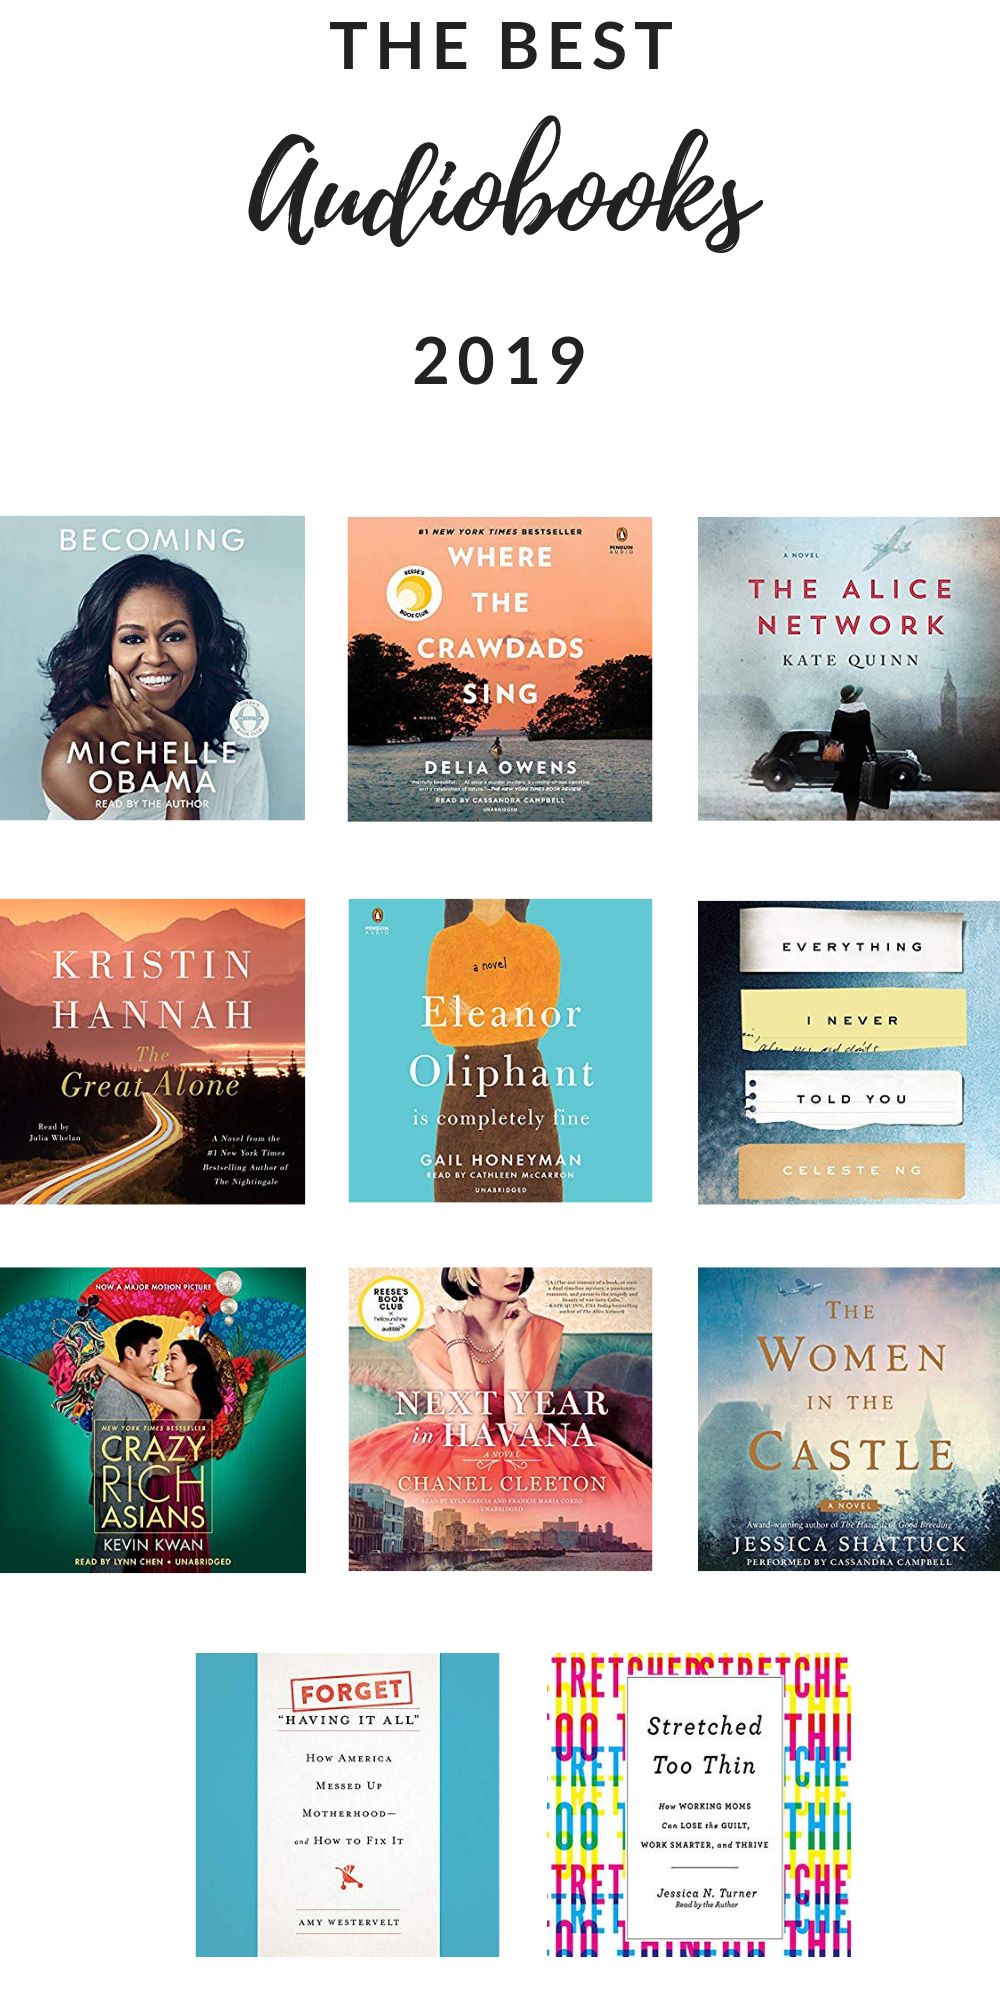 Best Audio Books 2019 Best Audiobooks of 2019, Part 1